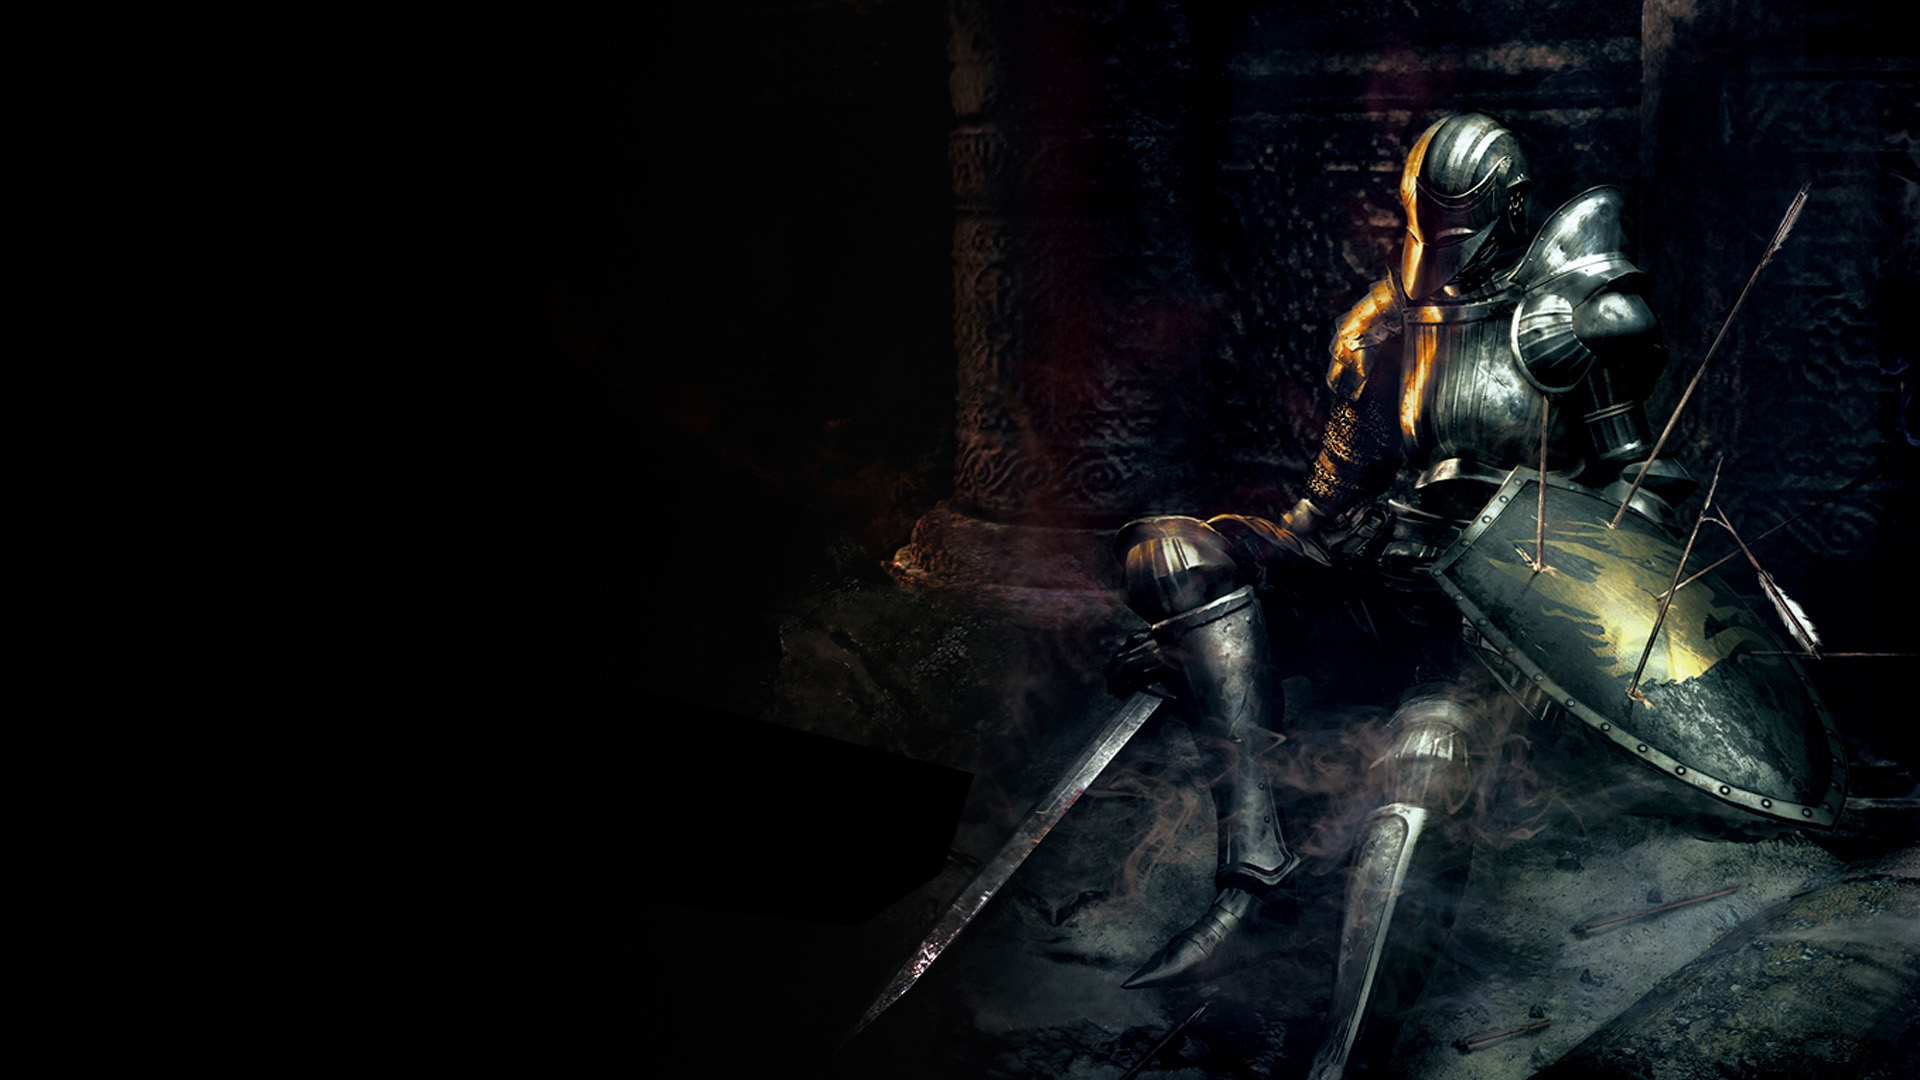 Demon's Souls artwork, hopeful for a Remaster